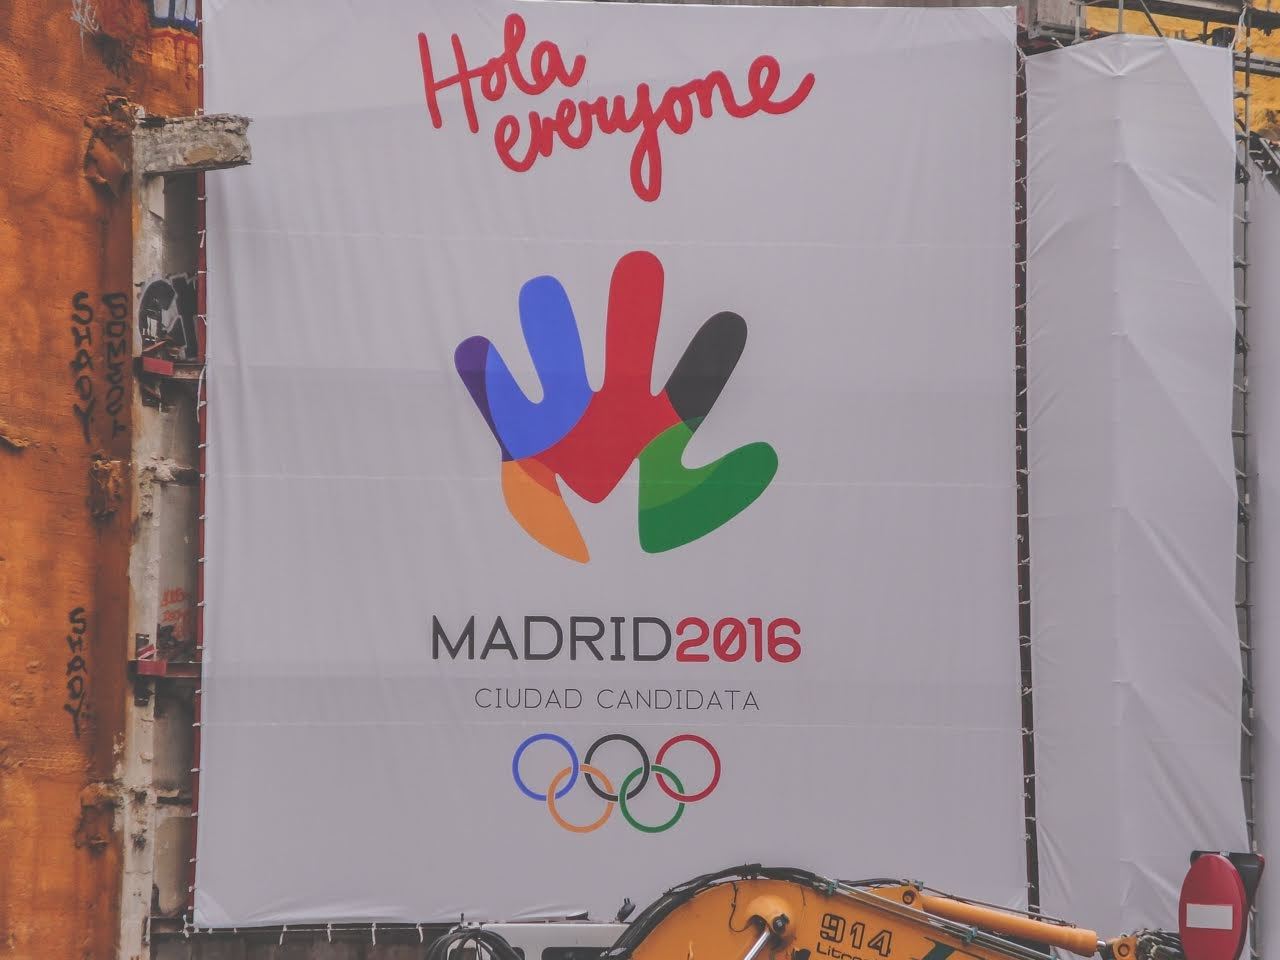 Madrid was a candidate city for the 2016 Olympic Games